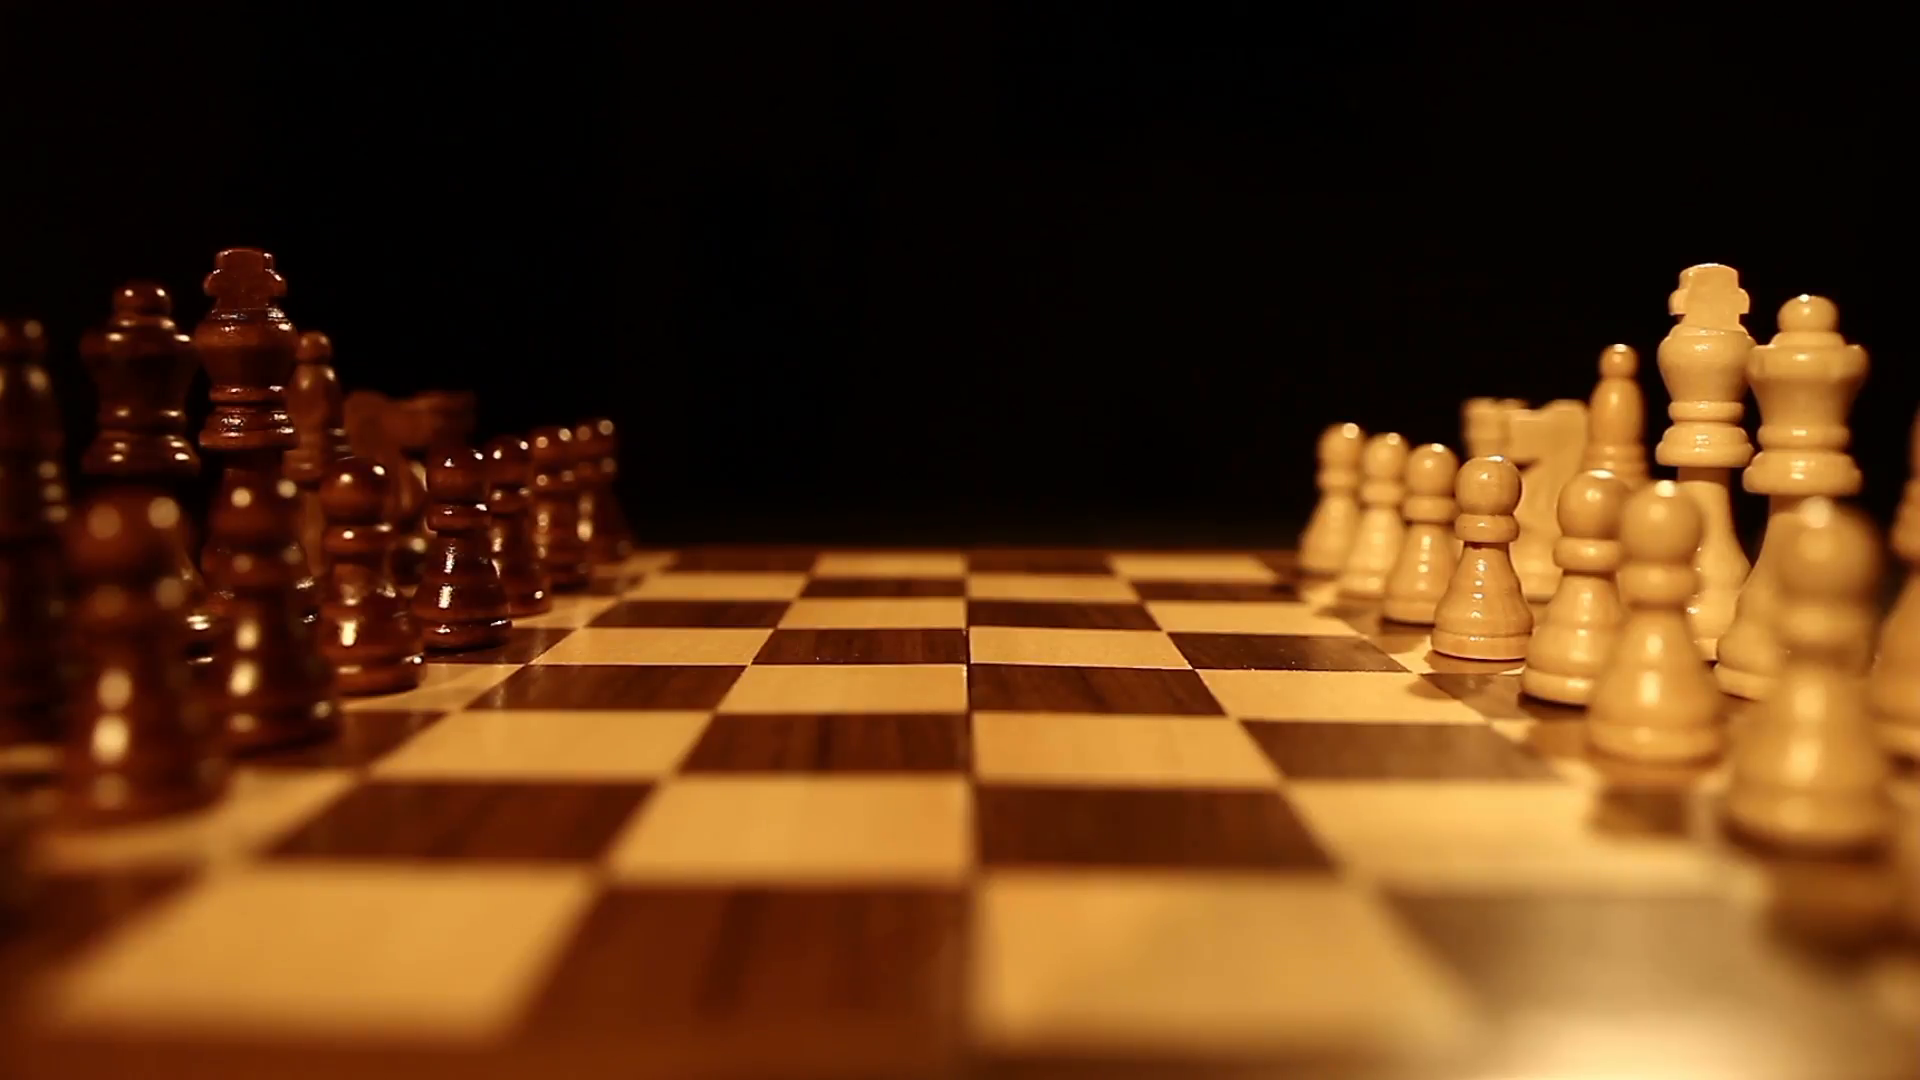 side-shot-of-a-chess-board-over-a-black-background-and-the-chess-pieces-lin_v0iu7ixol__F0000.png